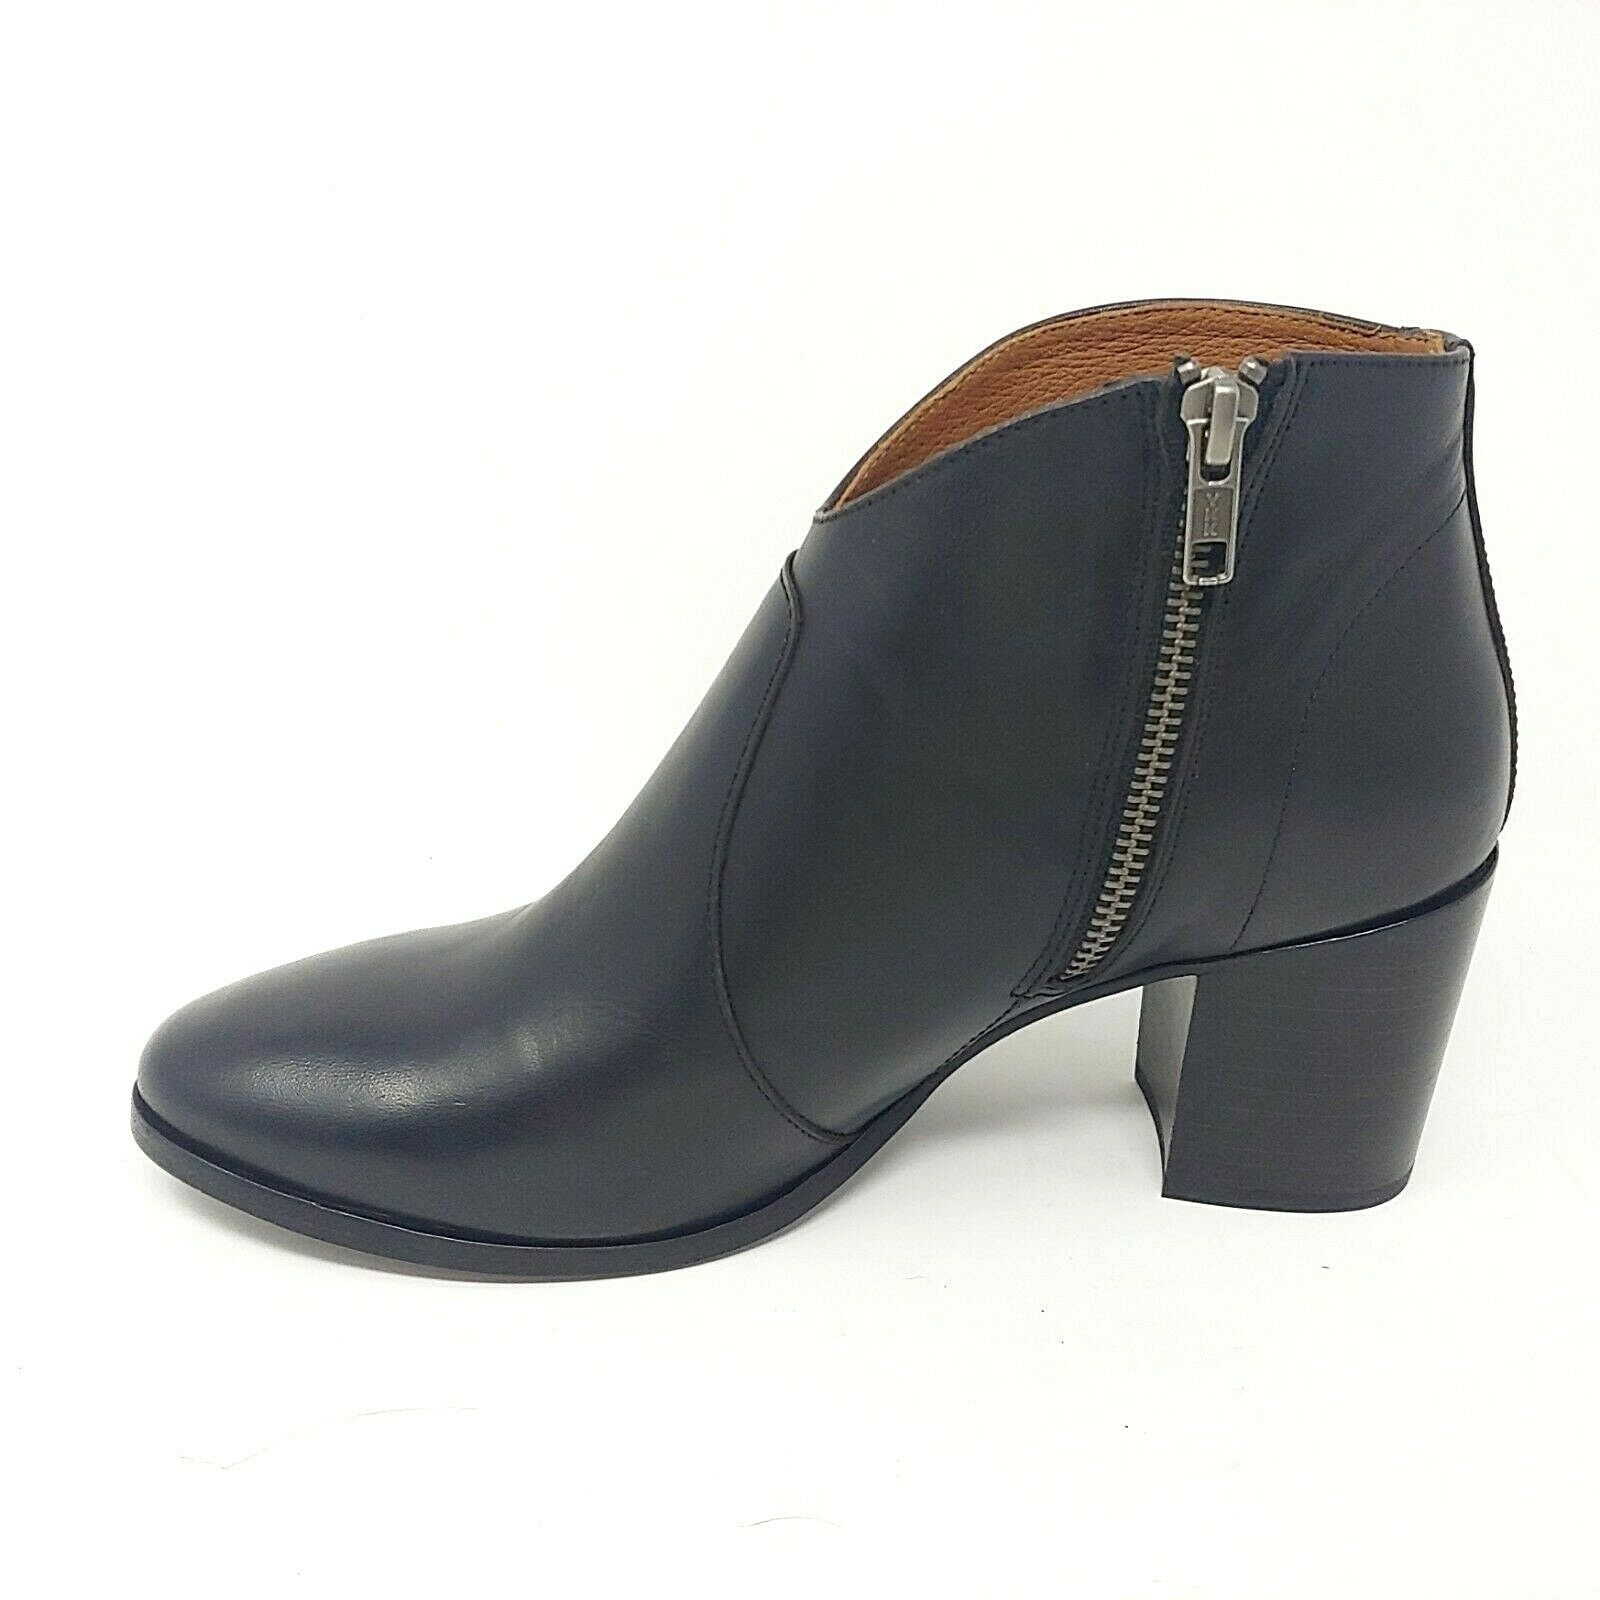 Frye Nora Zip Short Booties Black Leather Ankle Boots MSRP  298 Womens Size 7